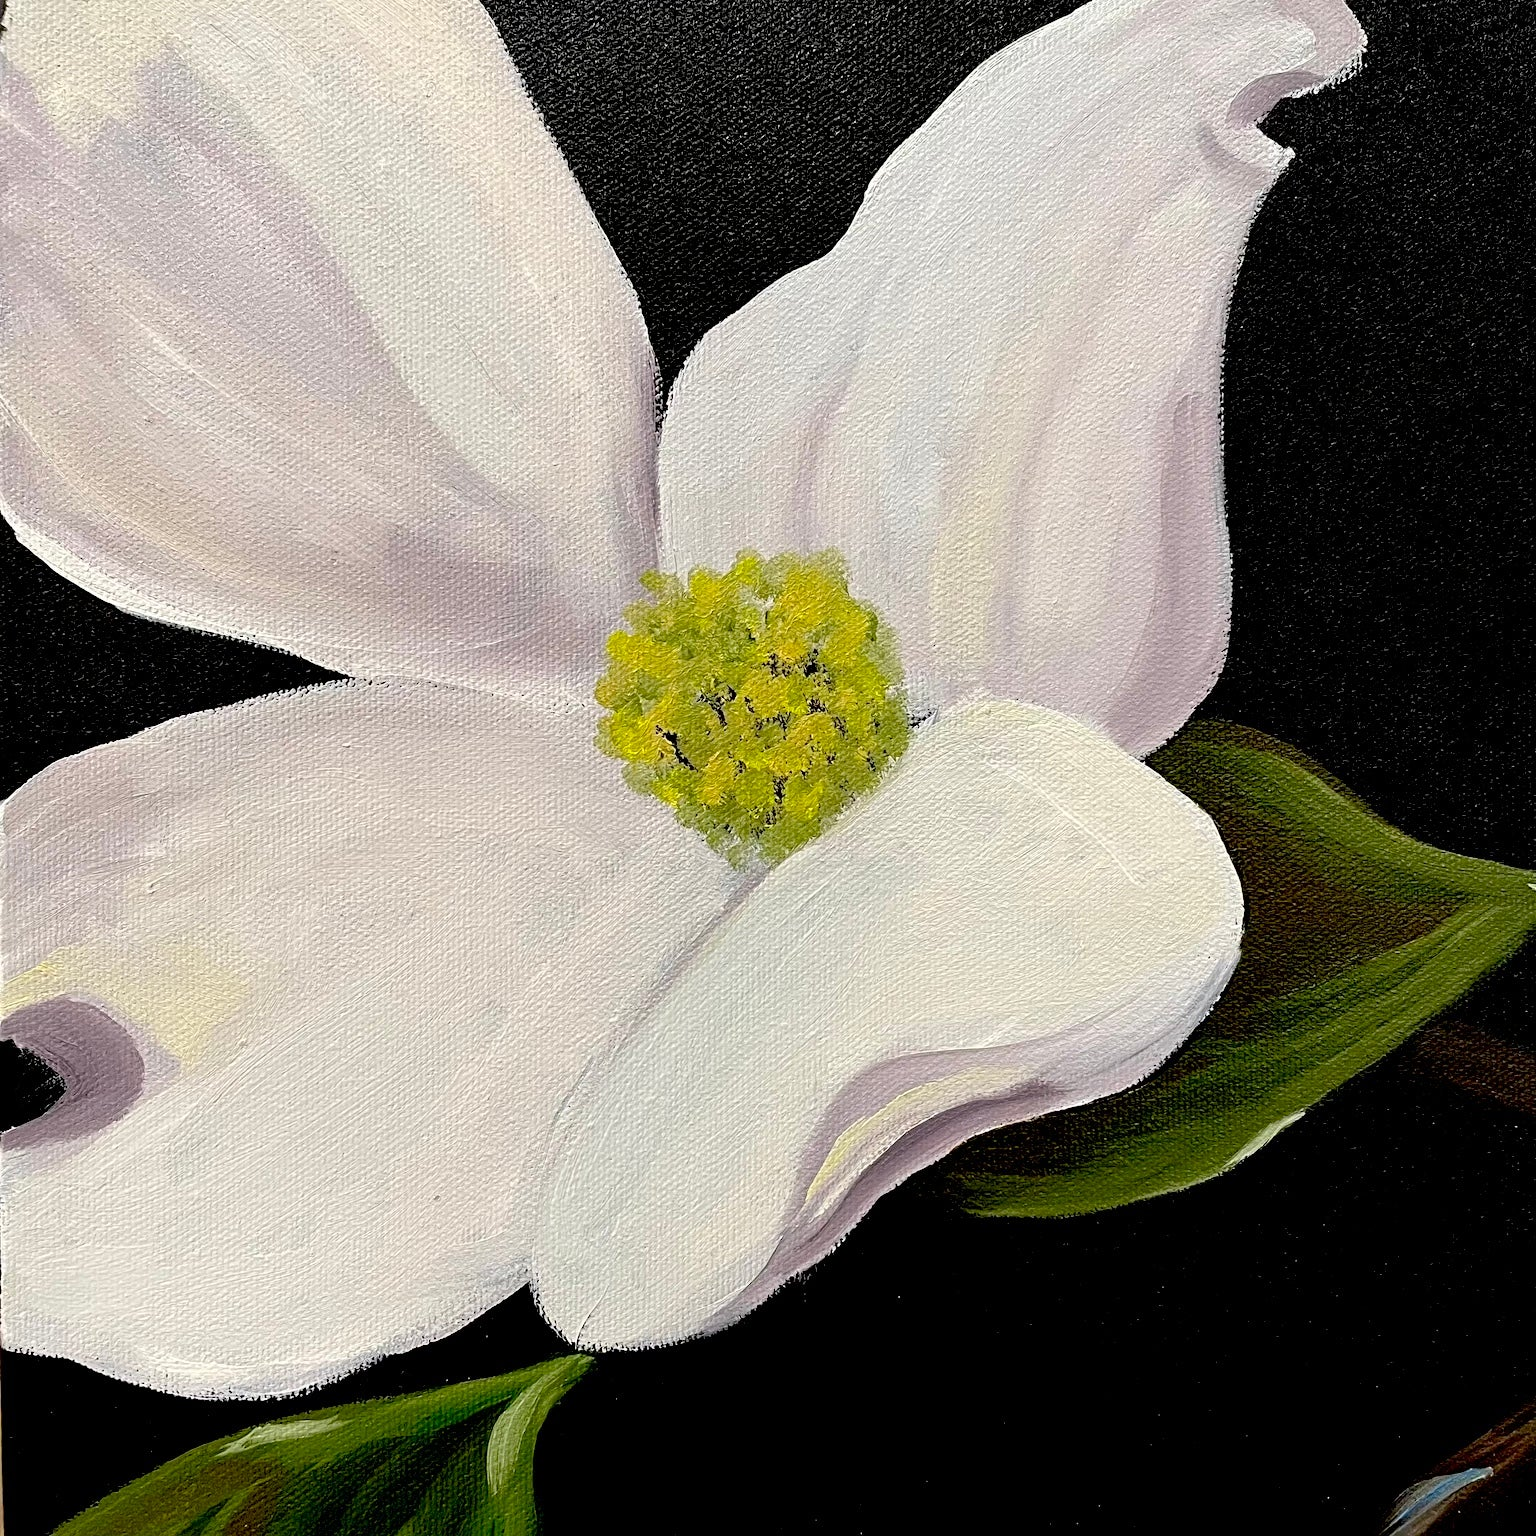 White Flowers and Green Leaves against a Black Background. Title - Wild Dogwood